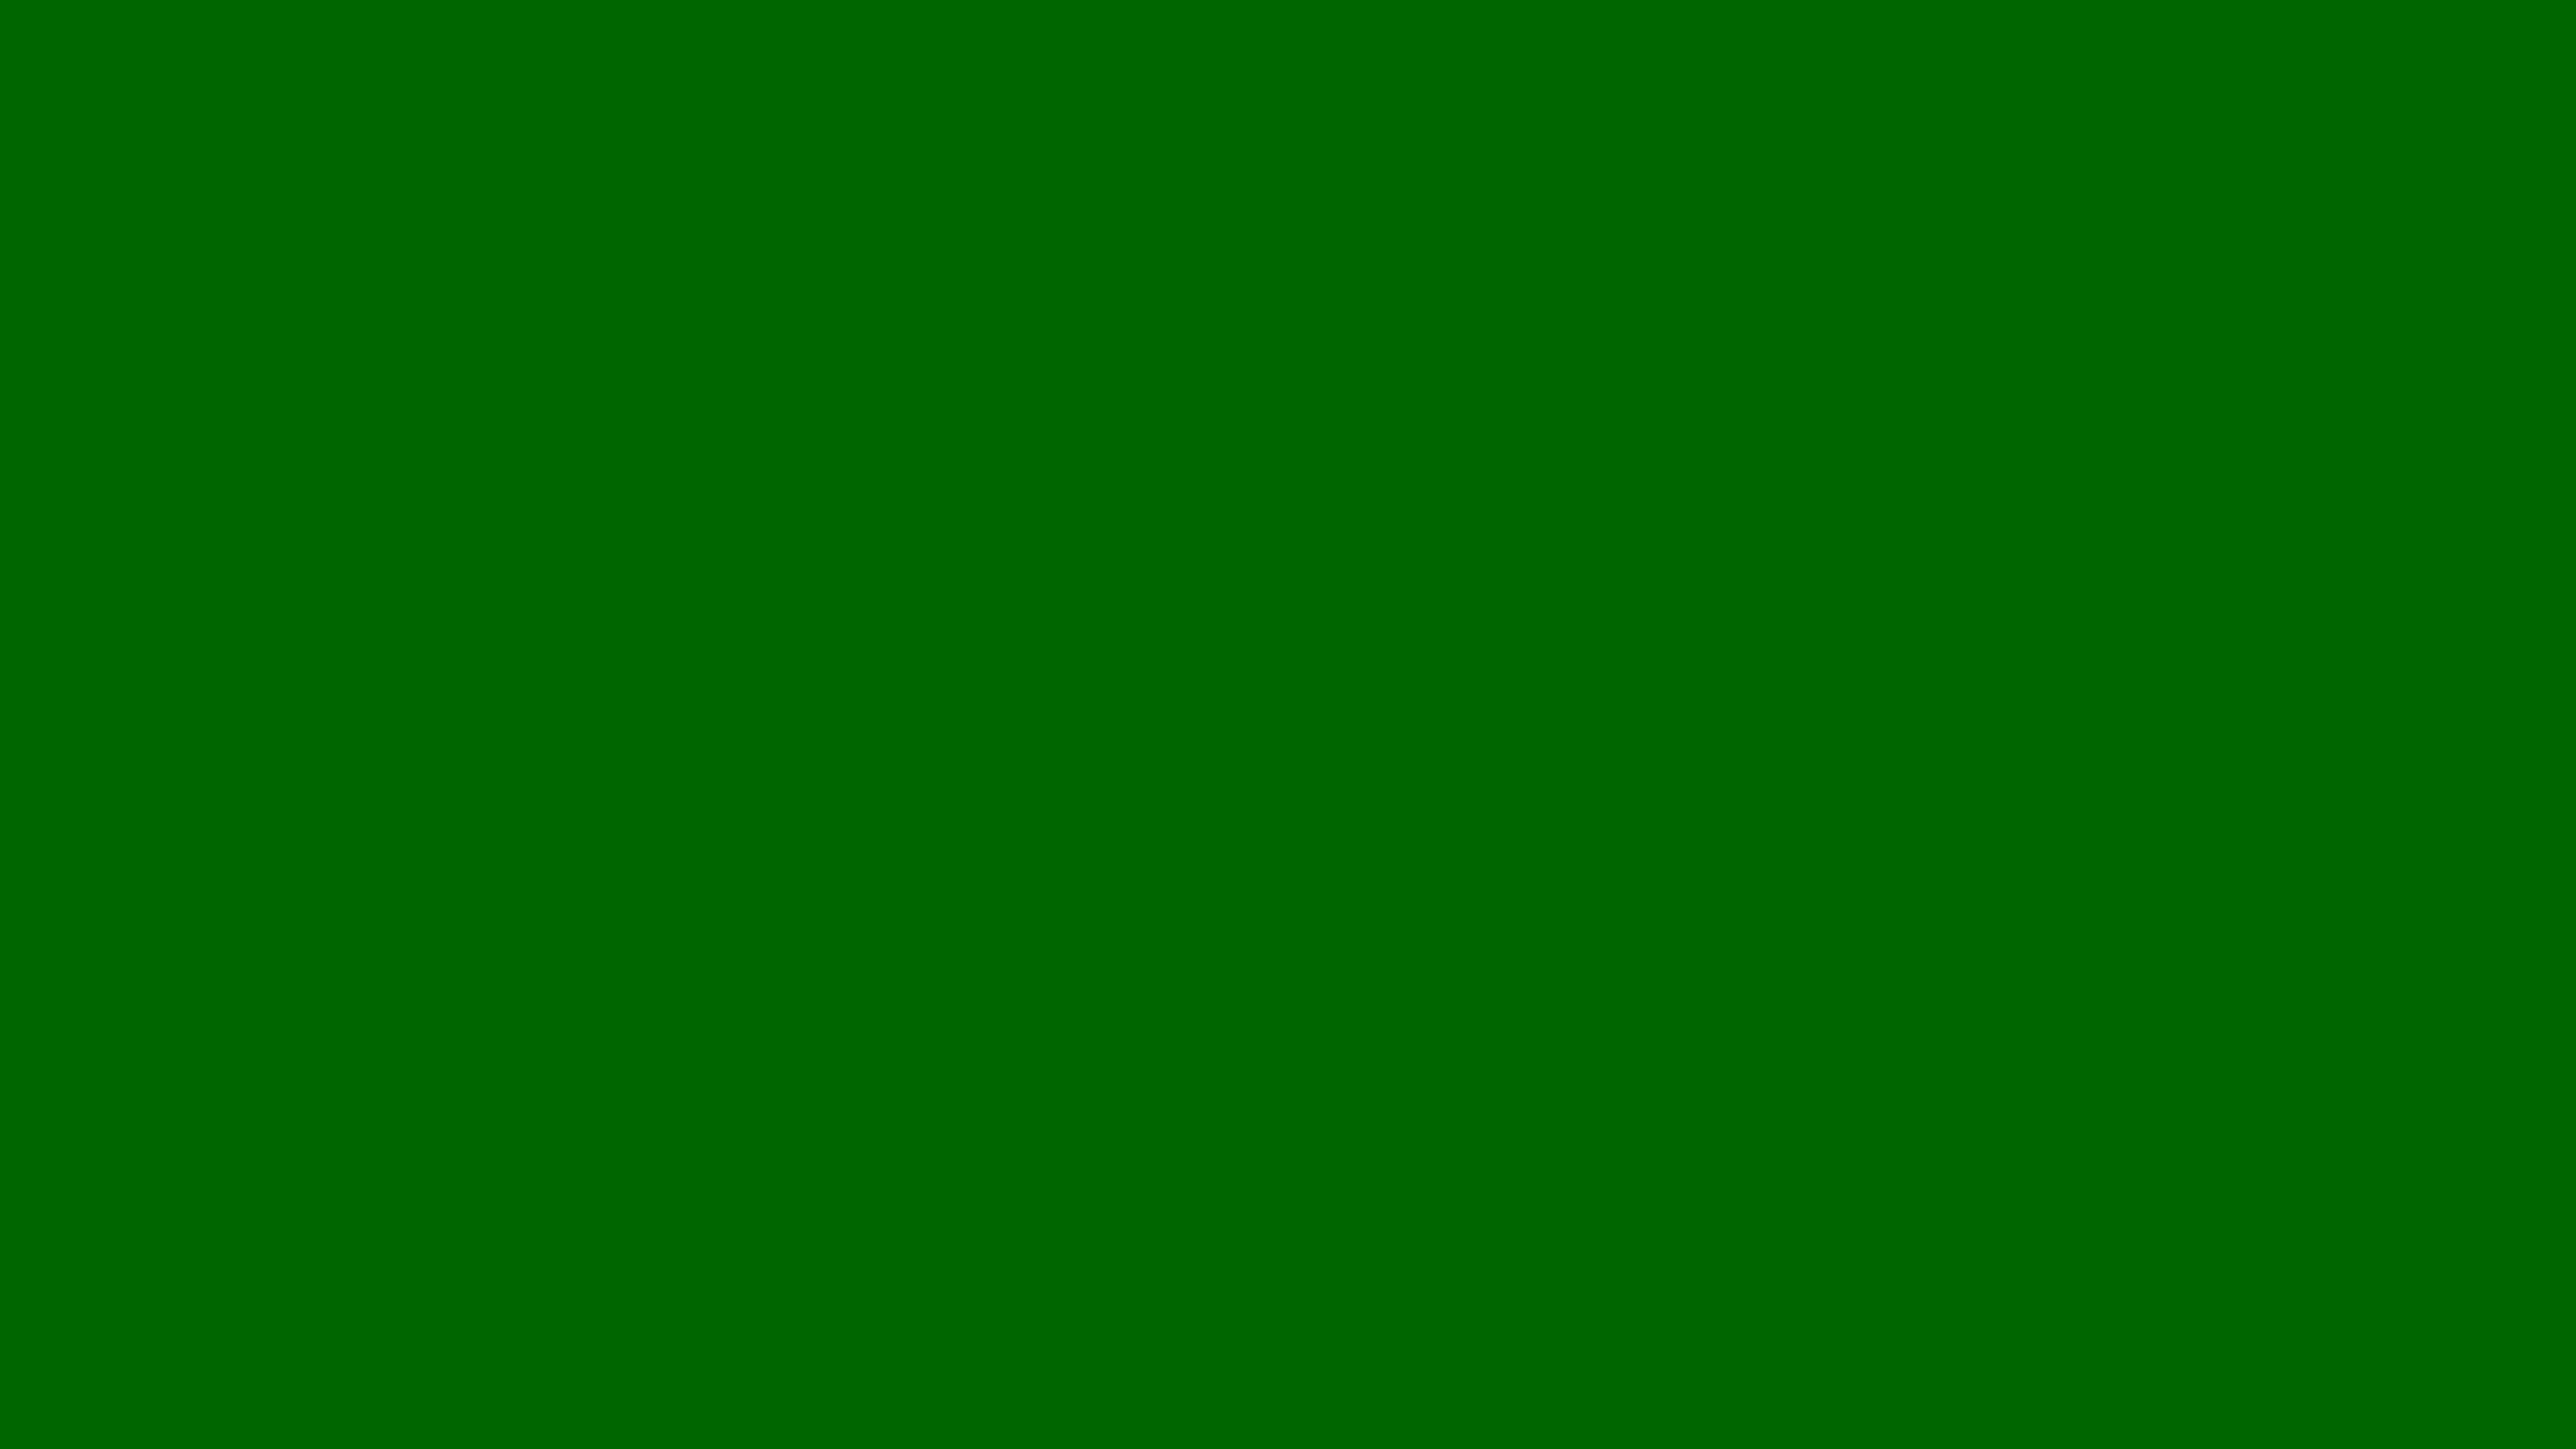 4096x2304 Pakistan Green Solid Color Background